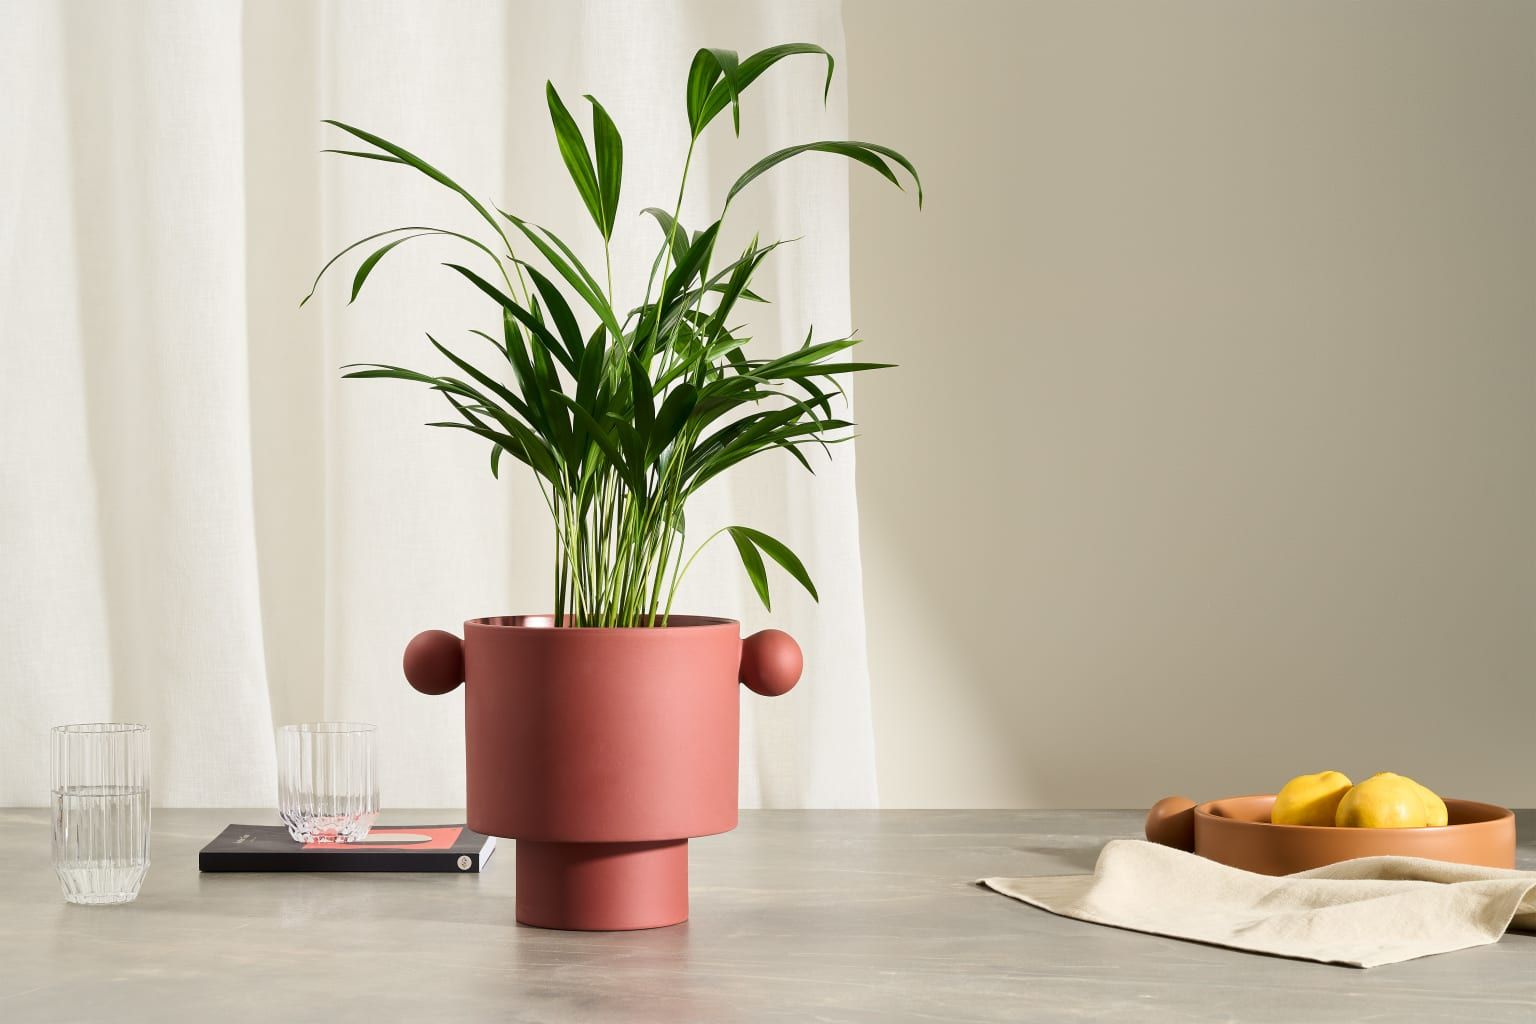 8 gifts perfect for a plant parent